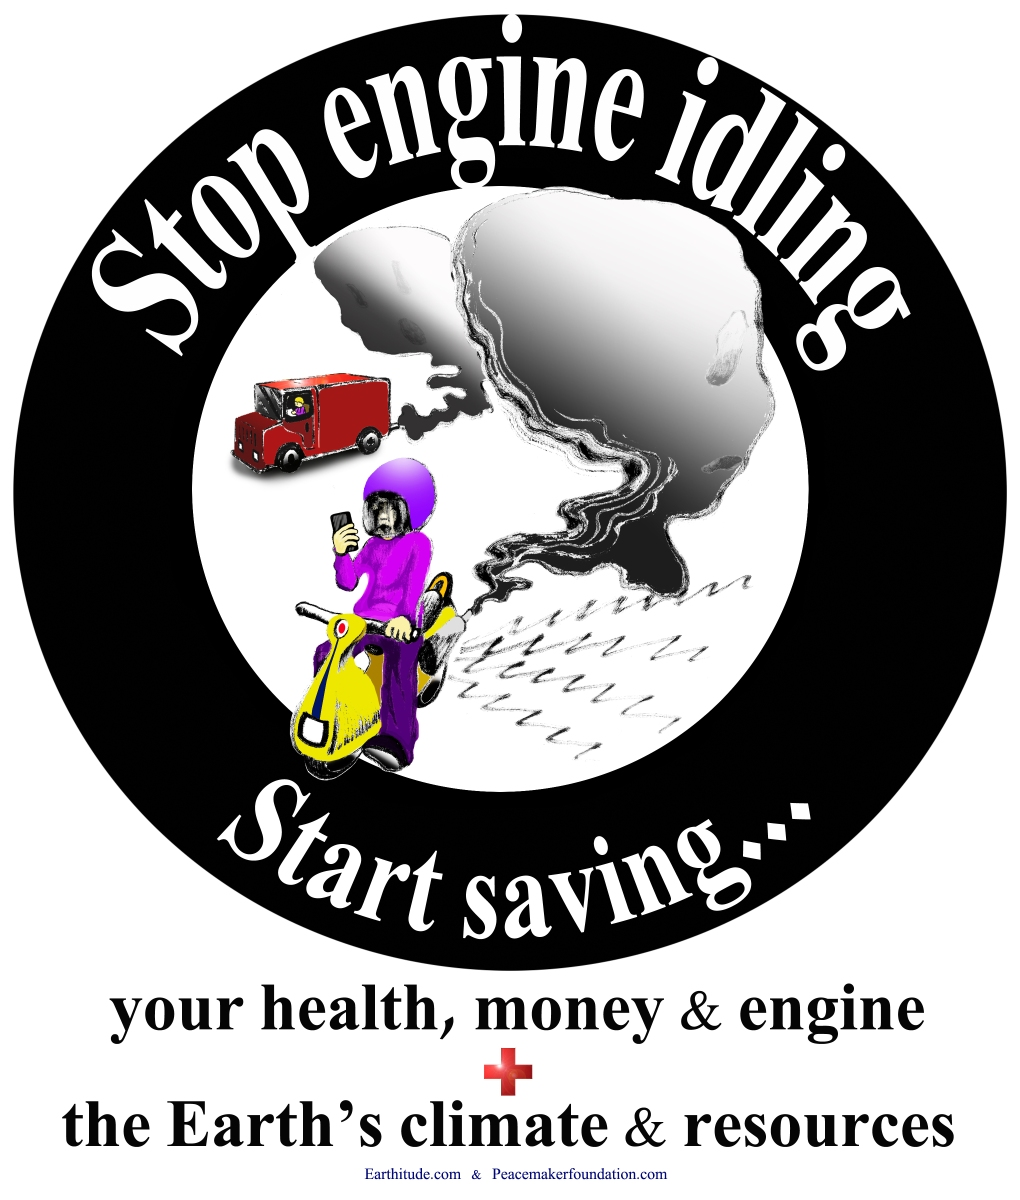 Turn off your engines sticker or poster